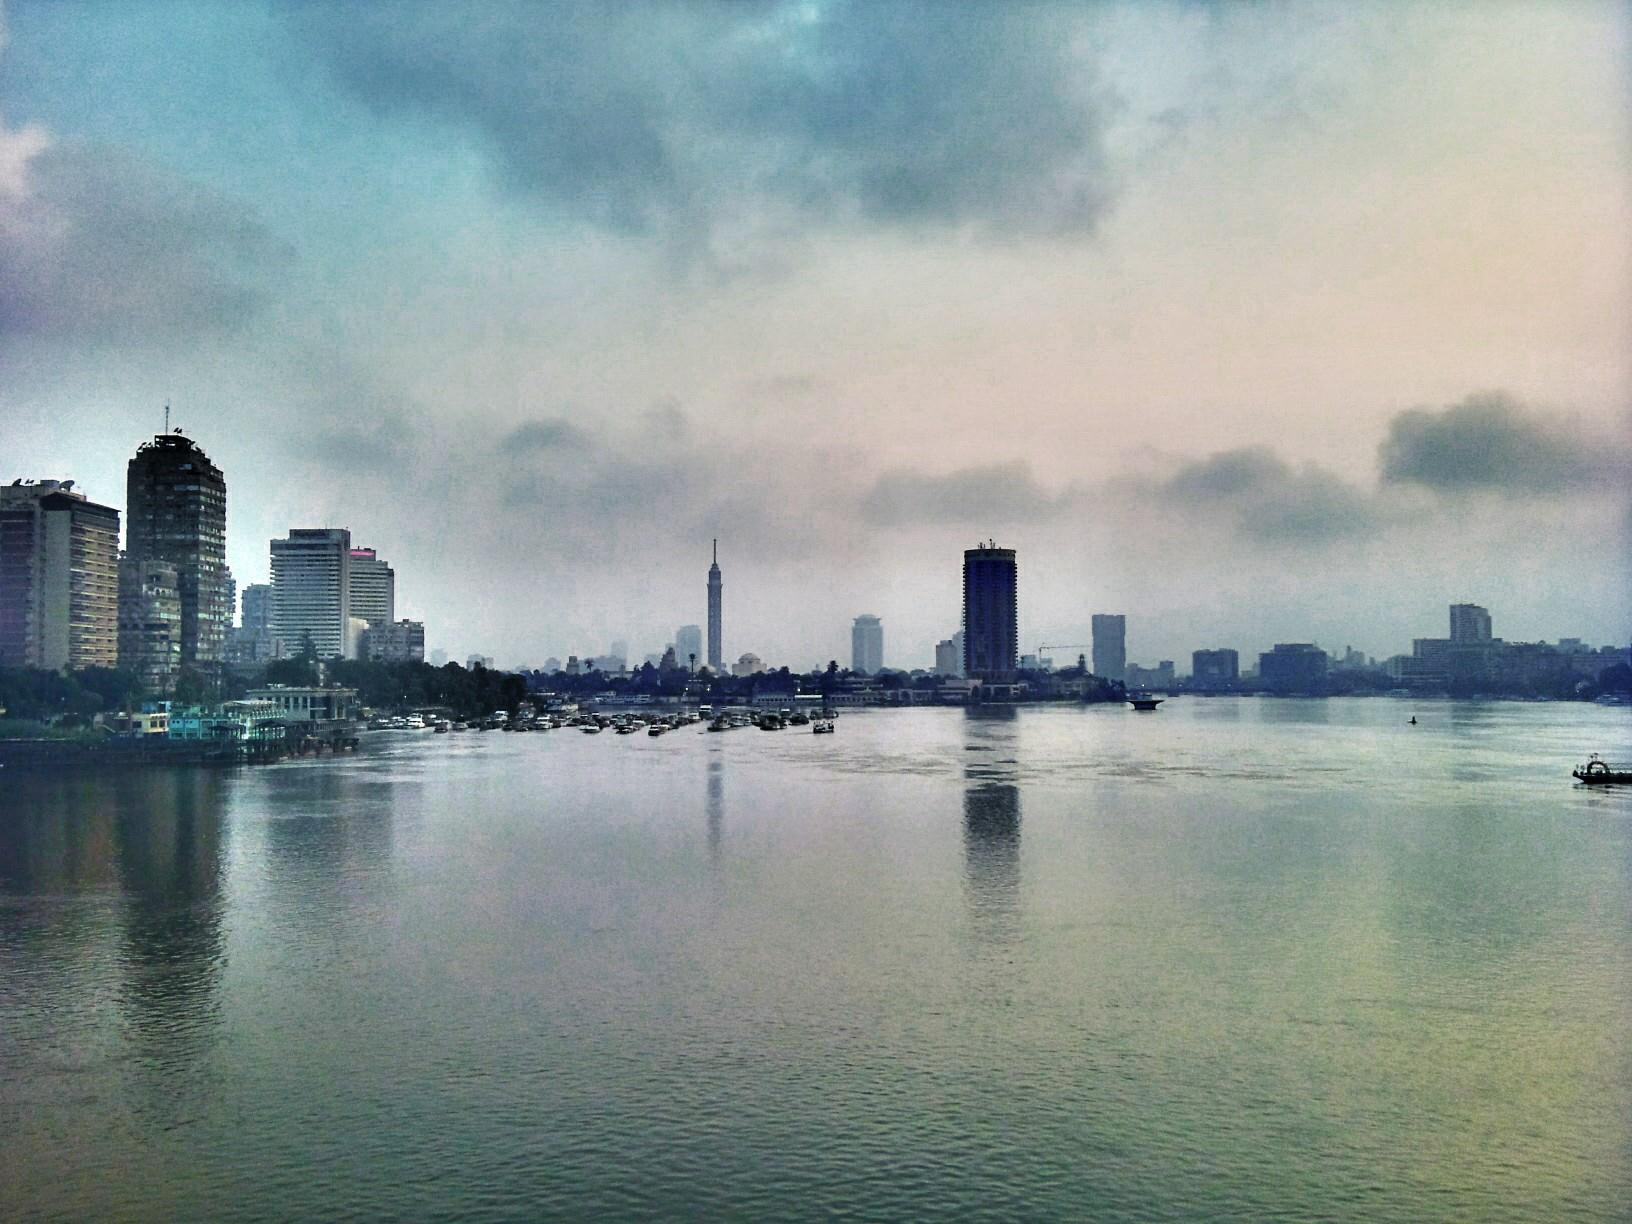 Photograph River Nile 4 by Ahmed Hussain on 500px